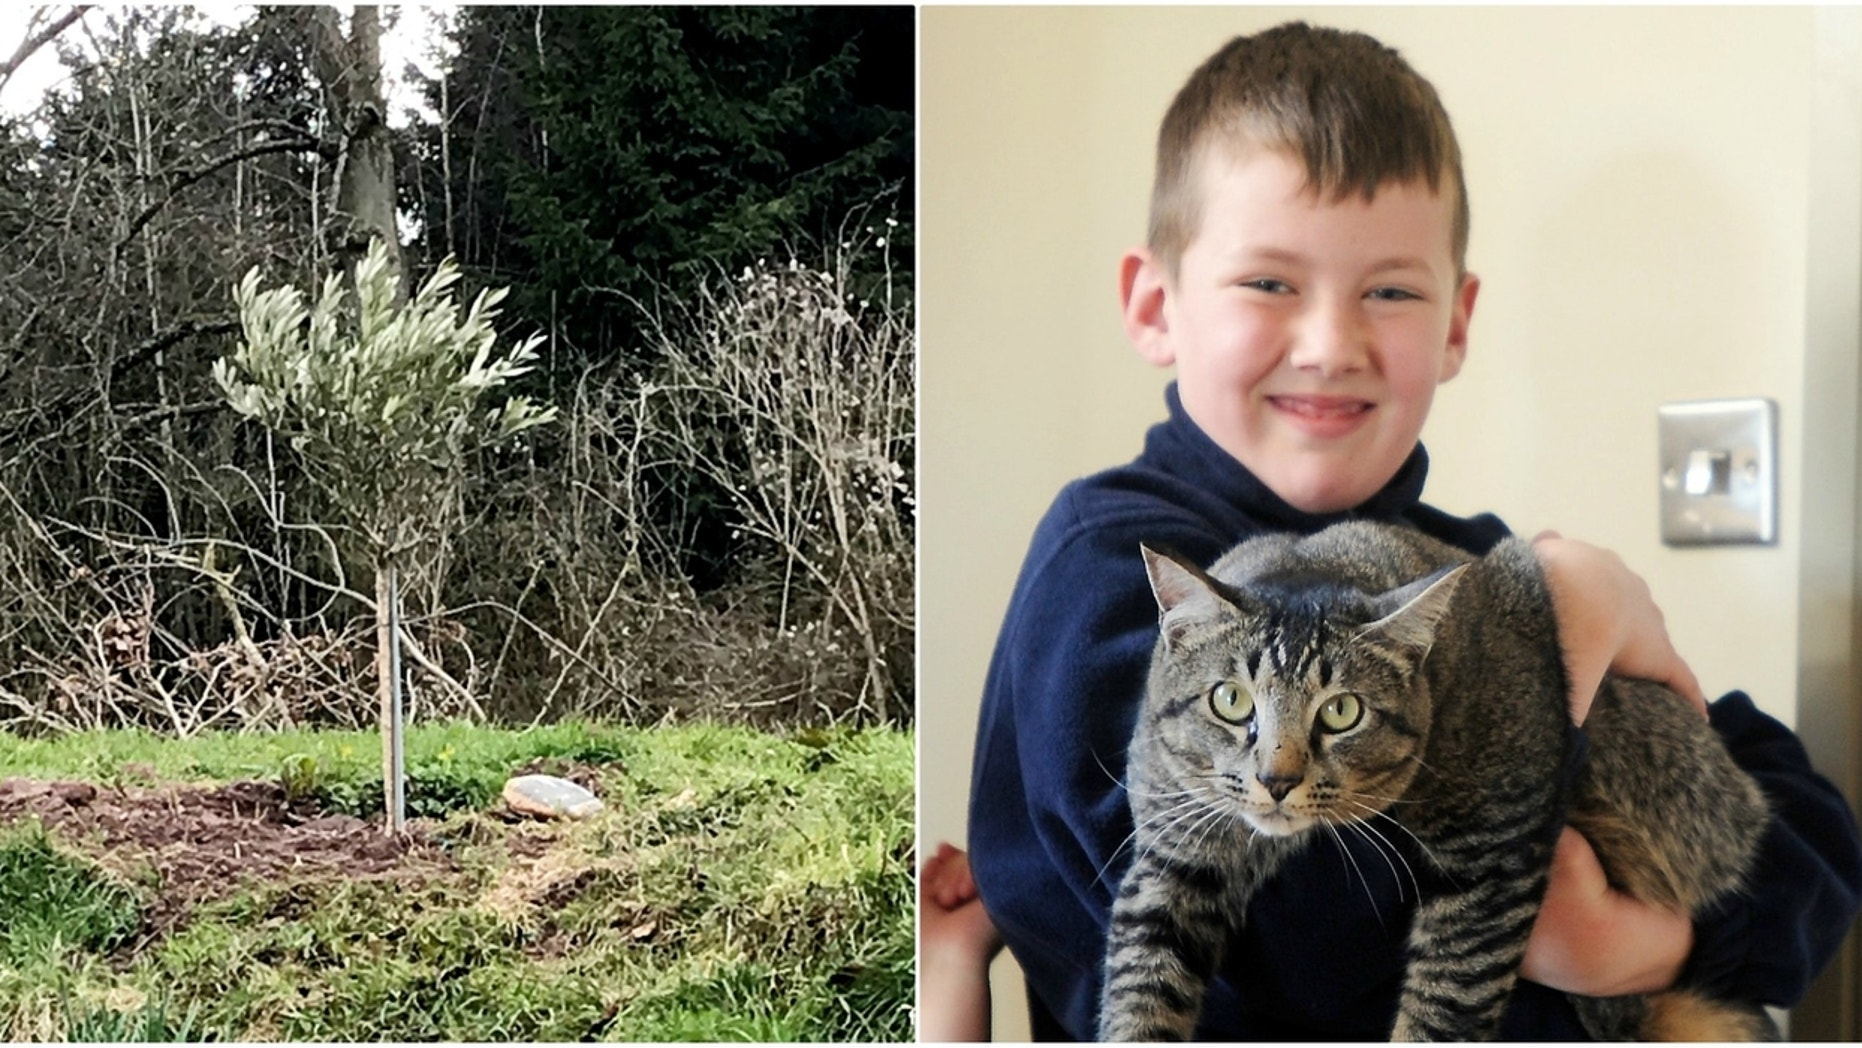 The Robinson family welcomes back a cat 12 days after it disappeared during Storm Emma in England.